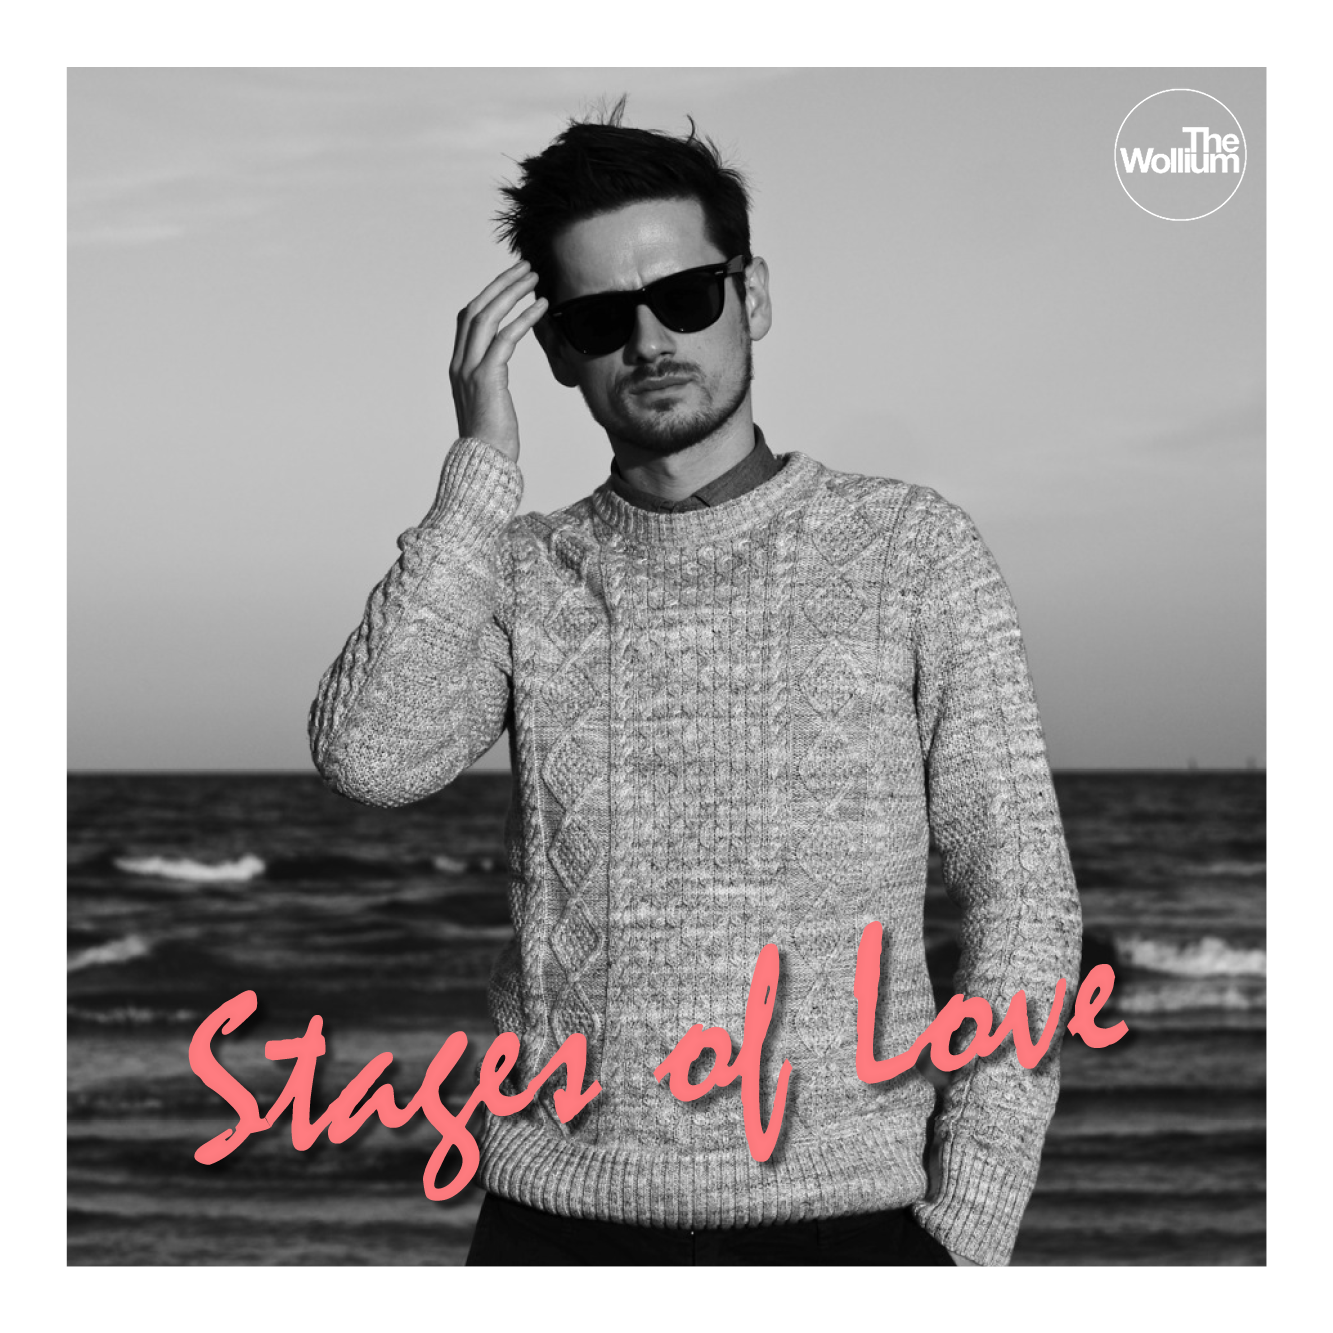 Stages of Love DJ Mix Cover von the Wollium